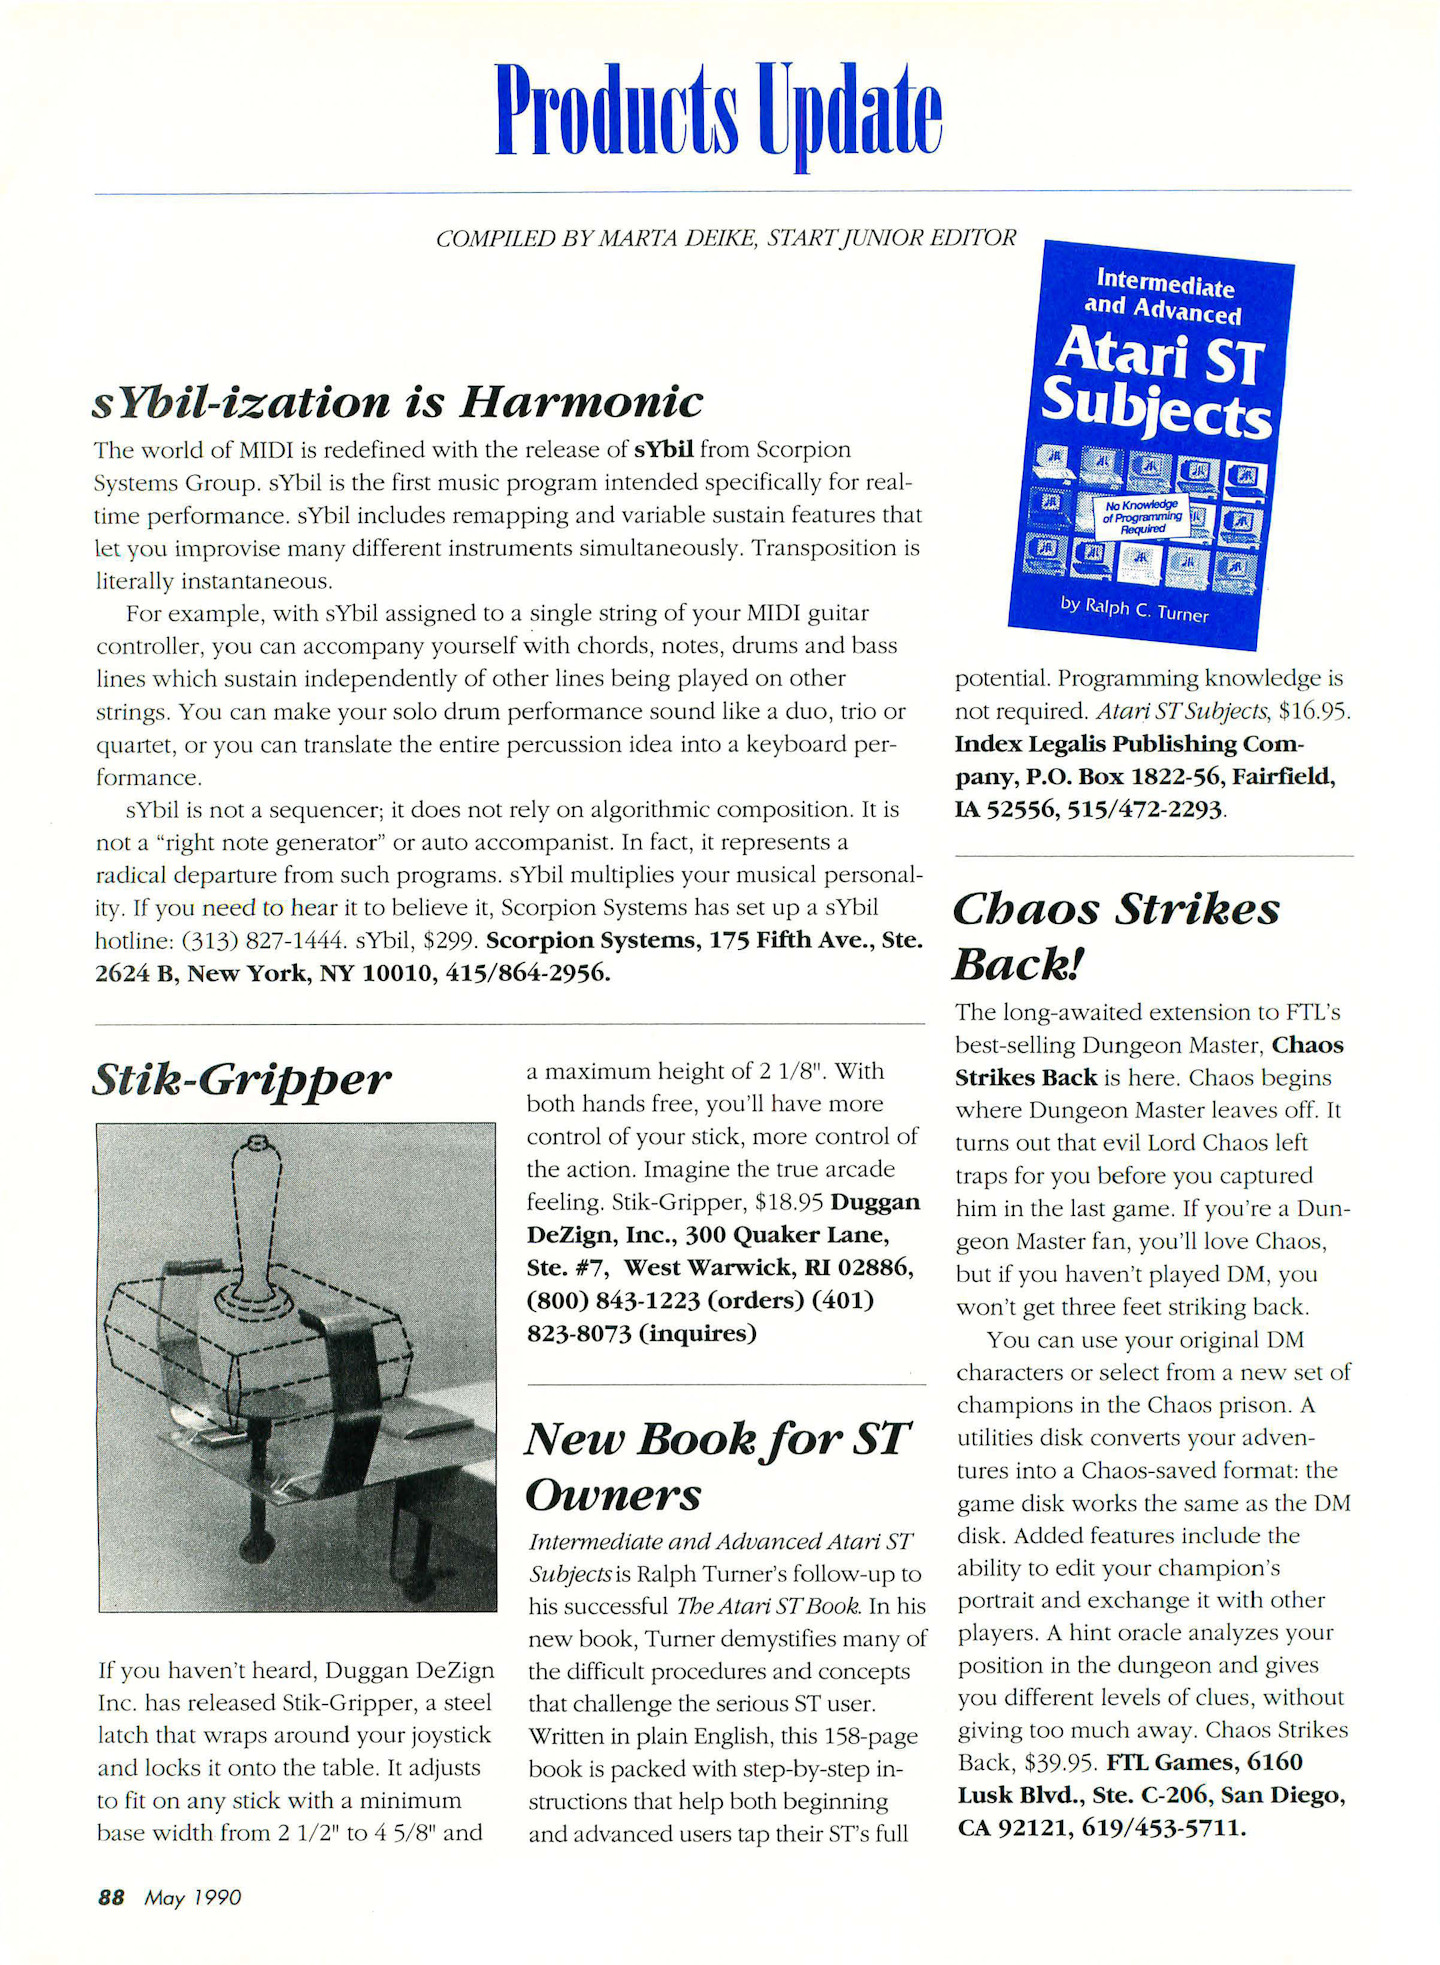 Chaos Strikes Back for Atari ST Preview published in American magazine 'Start', Vol 4 No 10 May 1990, Page 88